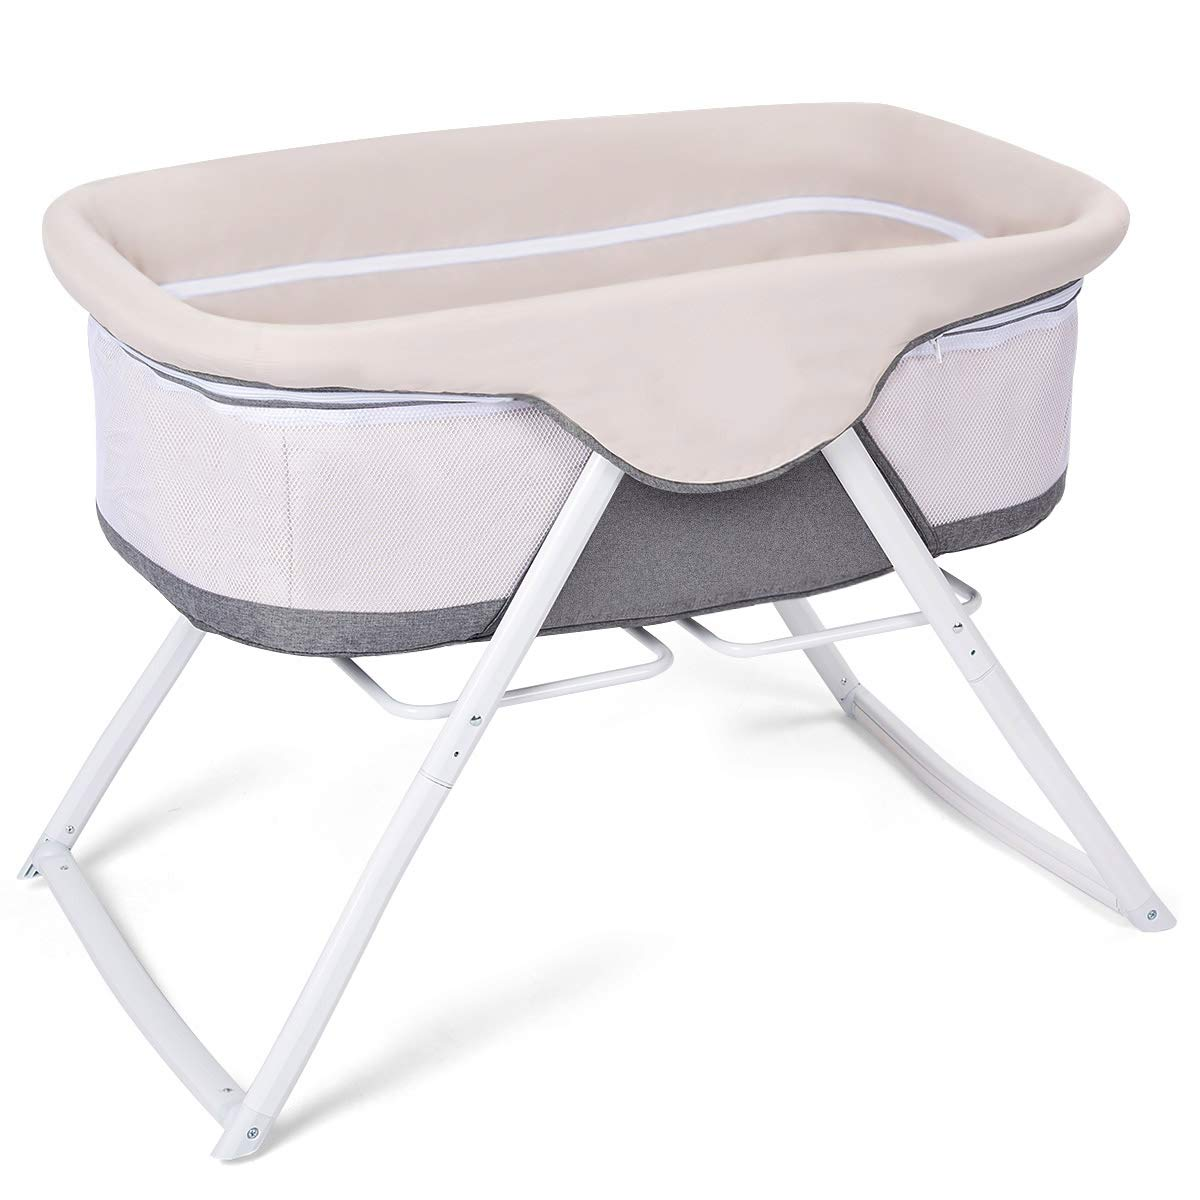 Costzon Baby Cradle, 2 in 1 Lightweight Rocking Bed with Detachable & Washable Mattress, Breathable Side Mesh, Portable Oxford Carry Bag (Beige)